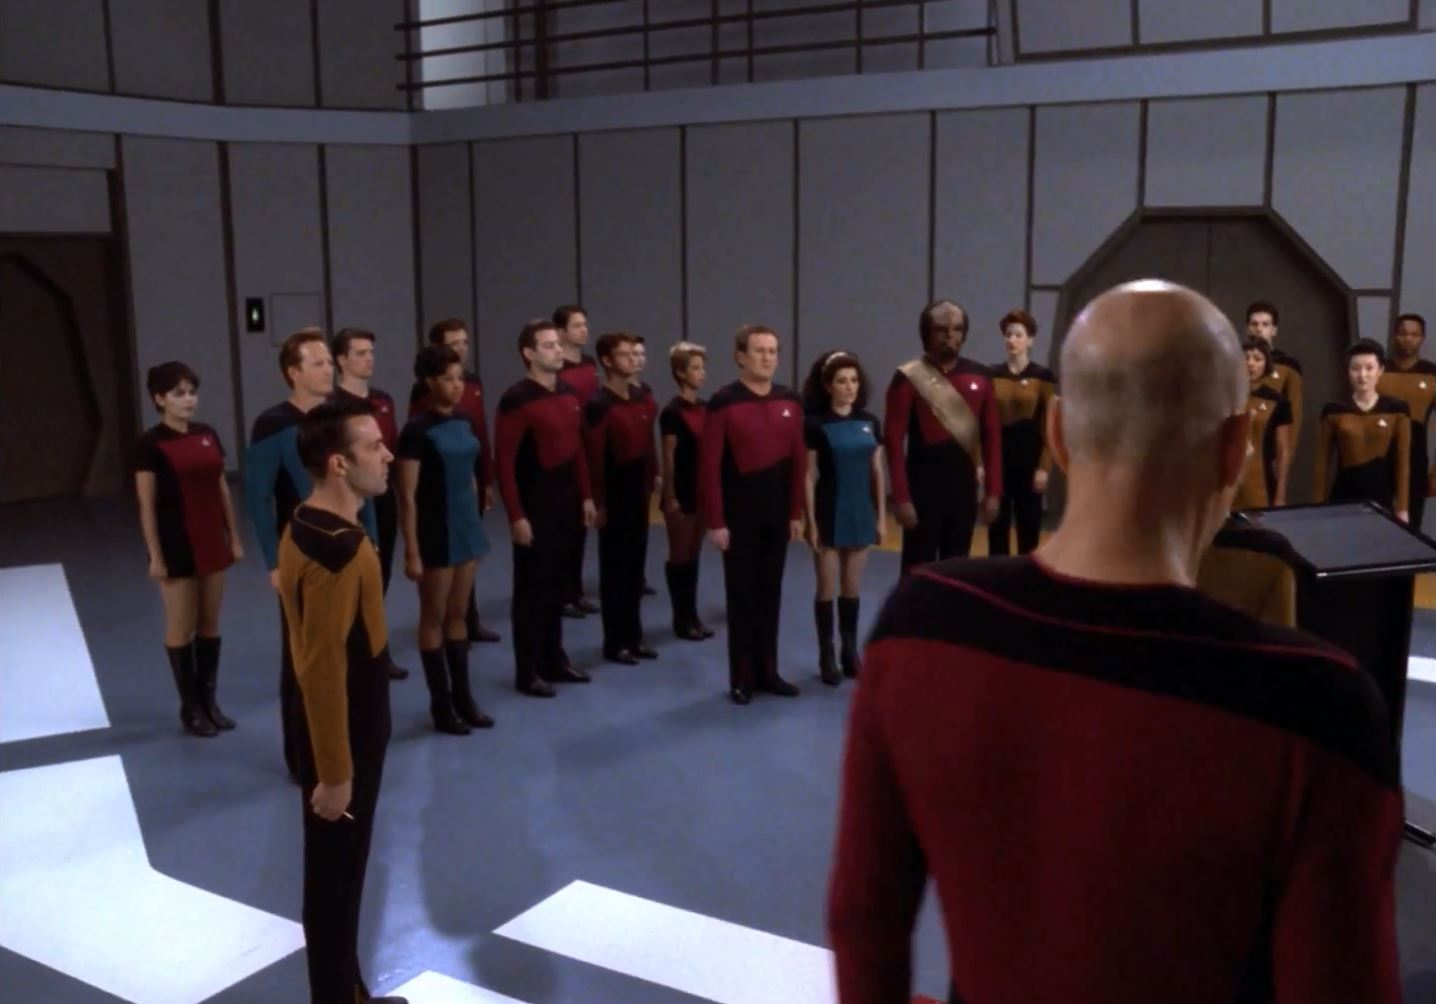 Star Trek TNG Season 7 Blu-Ray Trailer - All Good Things crew in skant uniform